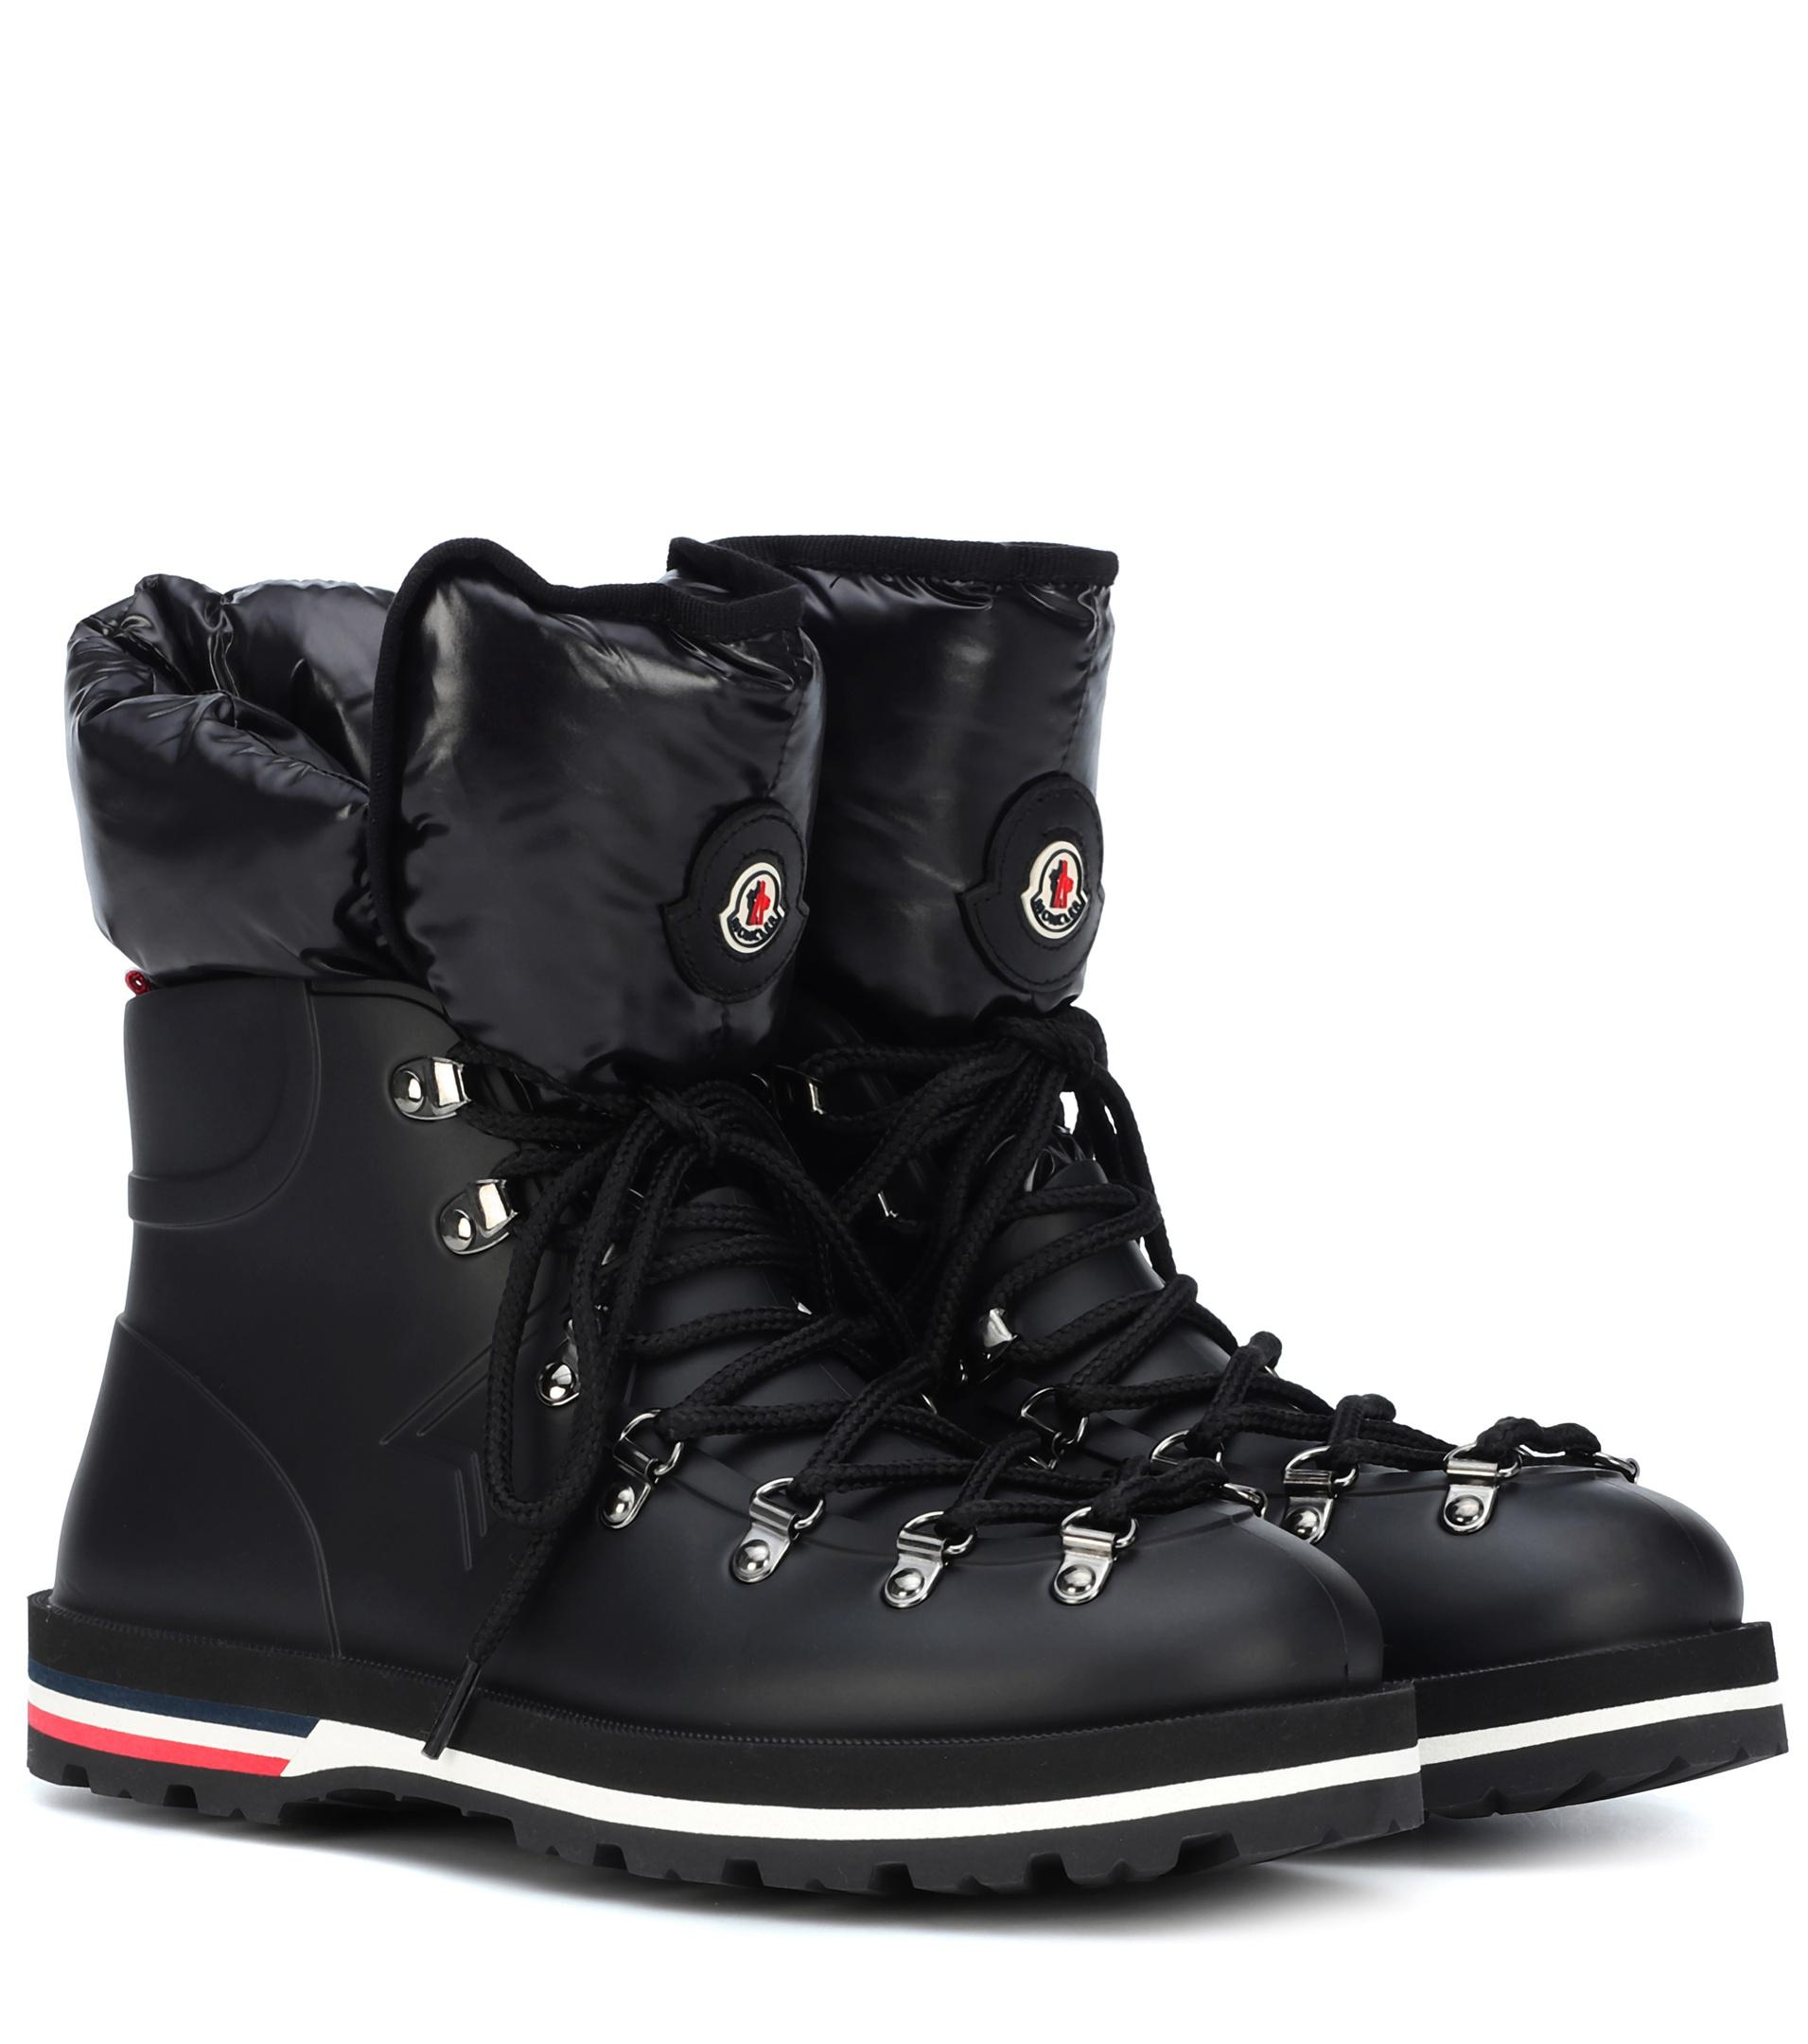 c019f5439 Moncler Inaya Rubber Boots in Black - Lyst